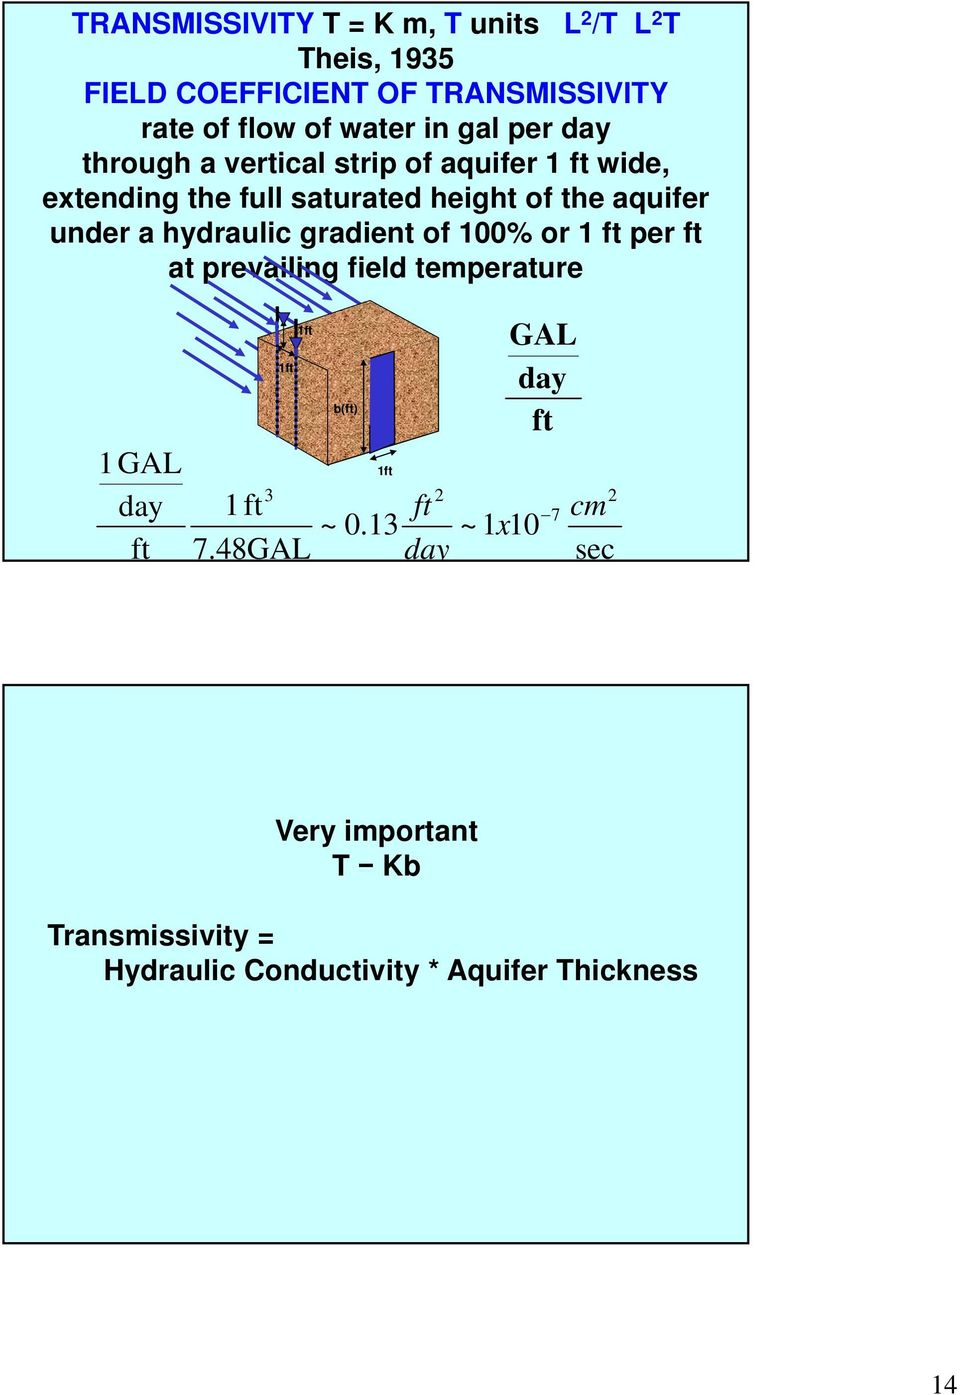 hydraulic gradient of 100% or 1 ft per ft at prevailing field temperature 1GAL day ft 1ft 1ft b(ft) 1ft 3 1ft ft ~ 0.